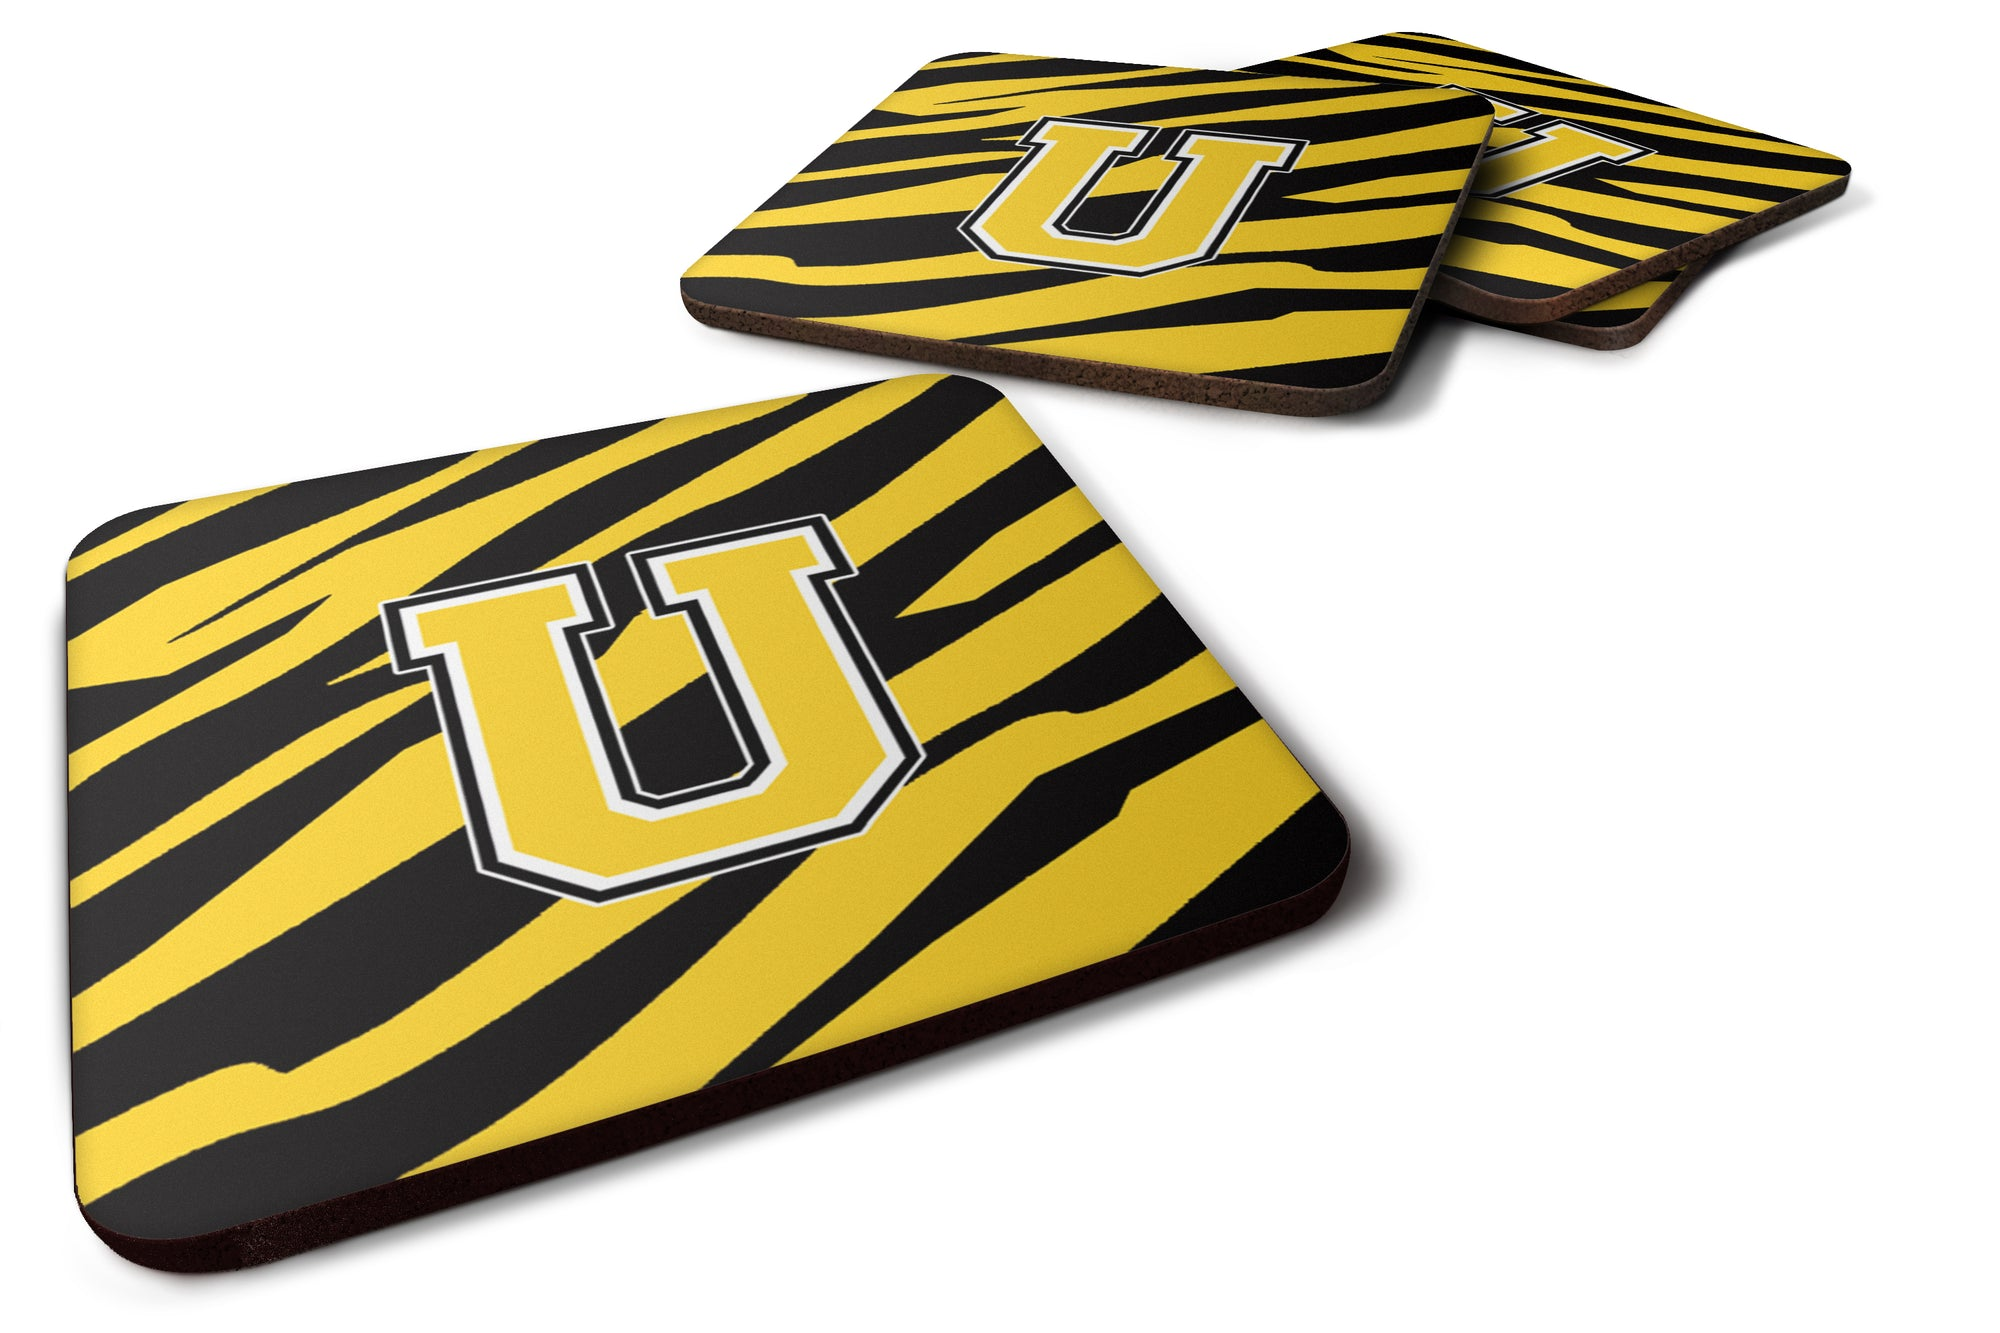 Set of 4 Monogram - Tiger Stripe - Black Gold Foam Coasters Initial Letter U by Caroline's Treasures